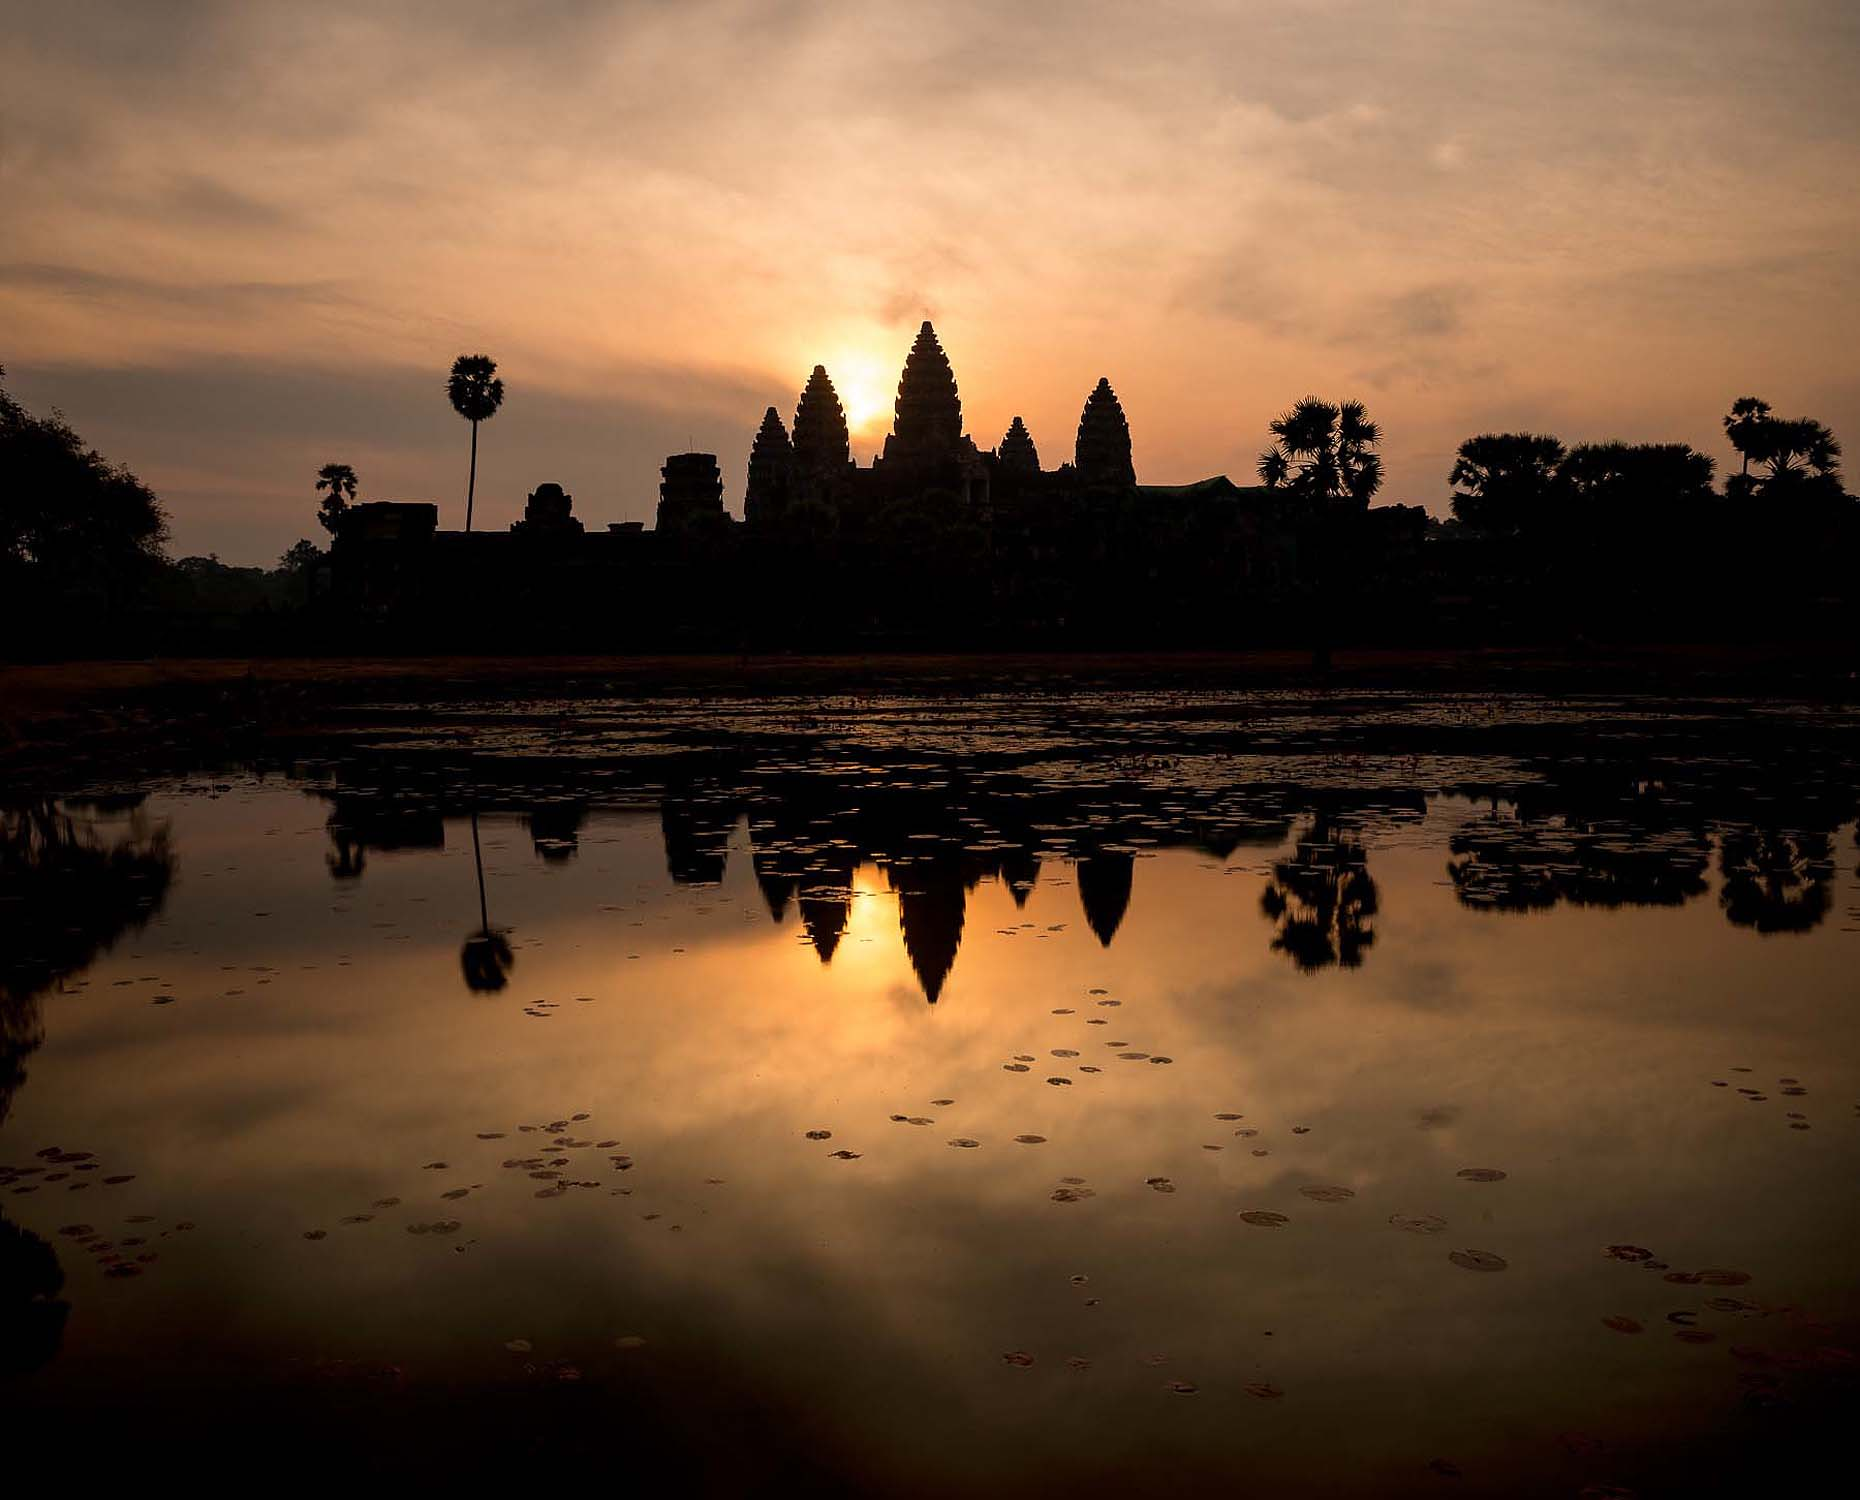 sunrise-angkor-wat-siem-reap-cambodia-temple-dawn-travel-43